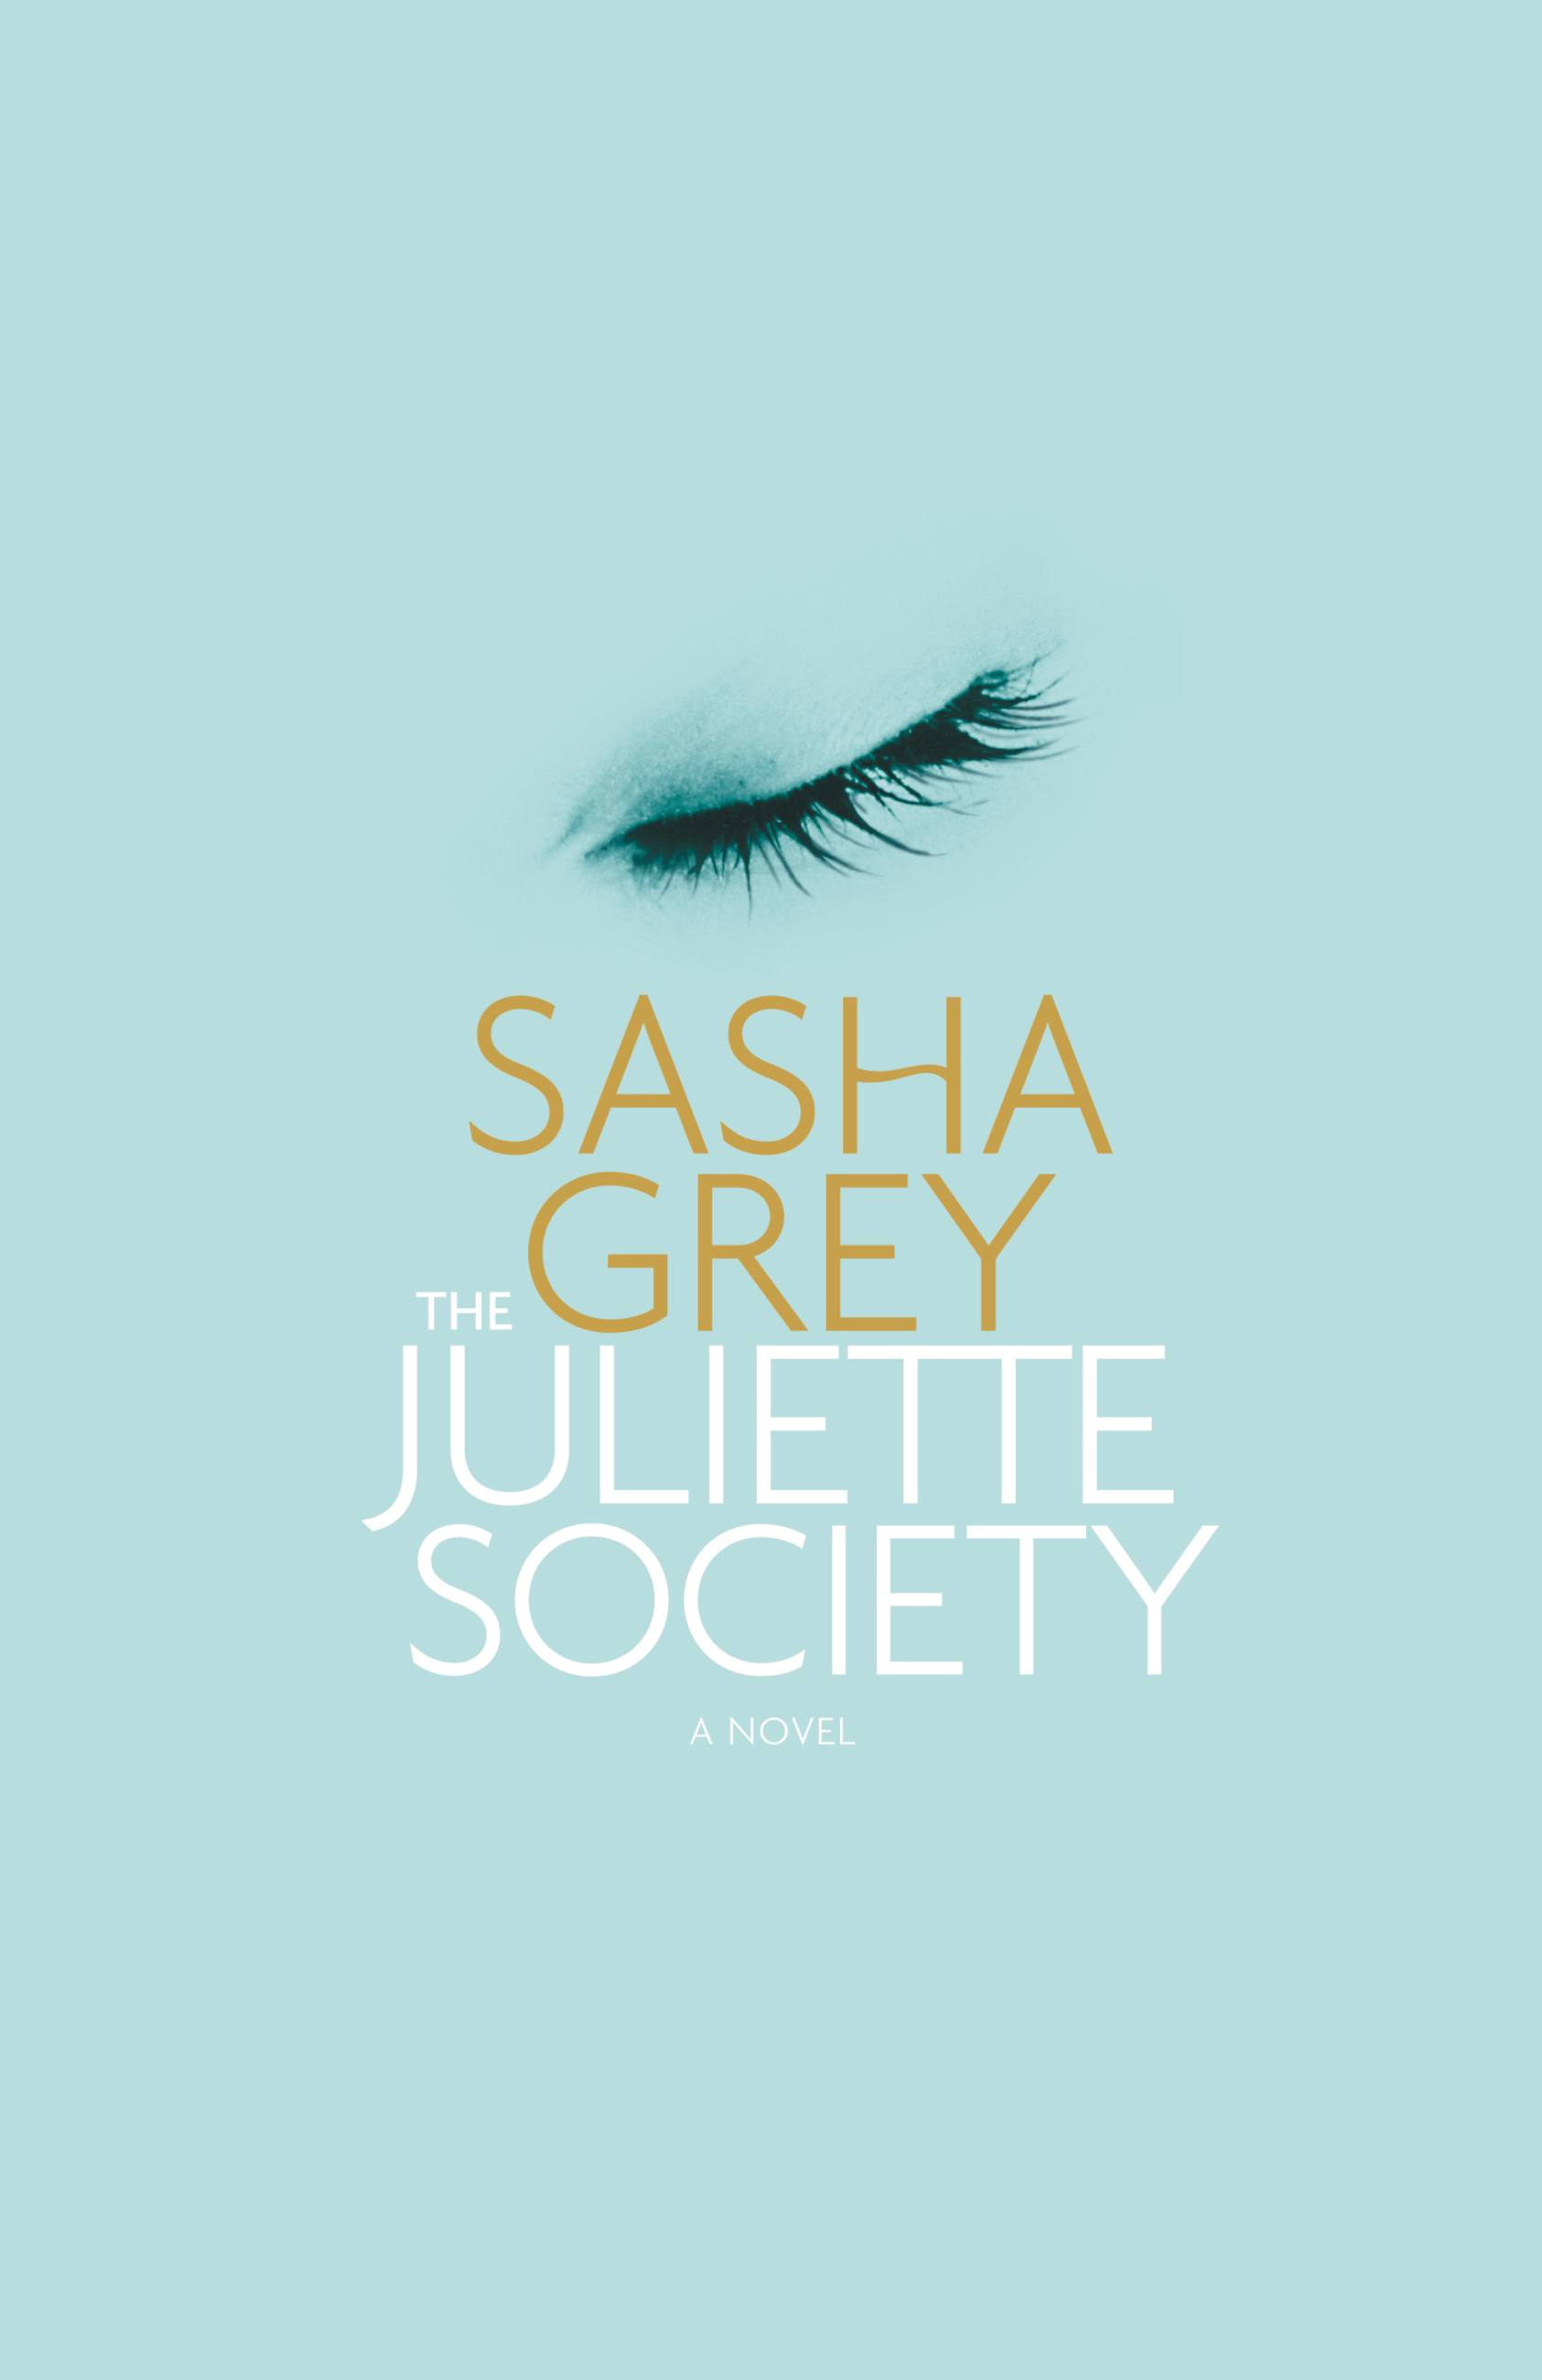 Sasha Grey The Juliette Society